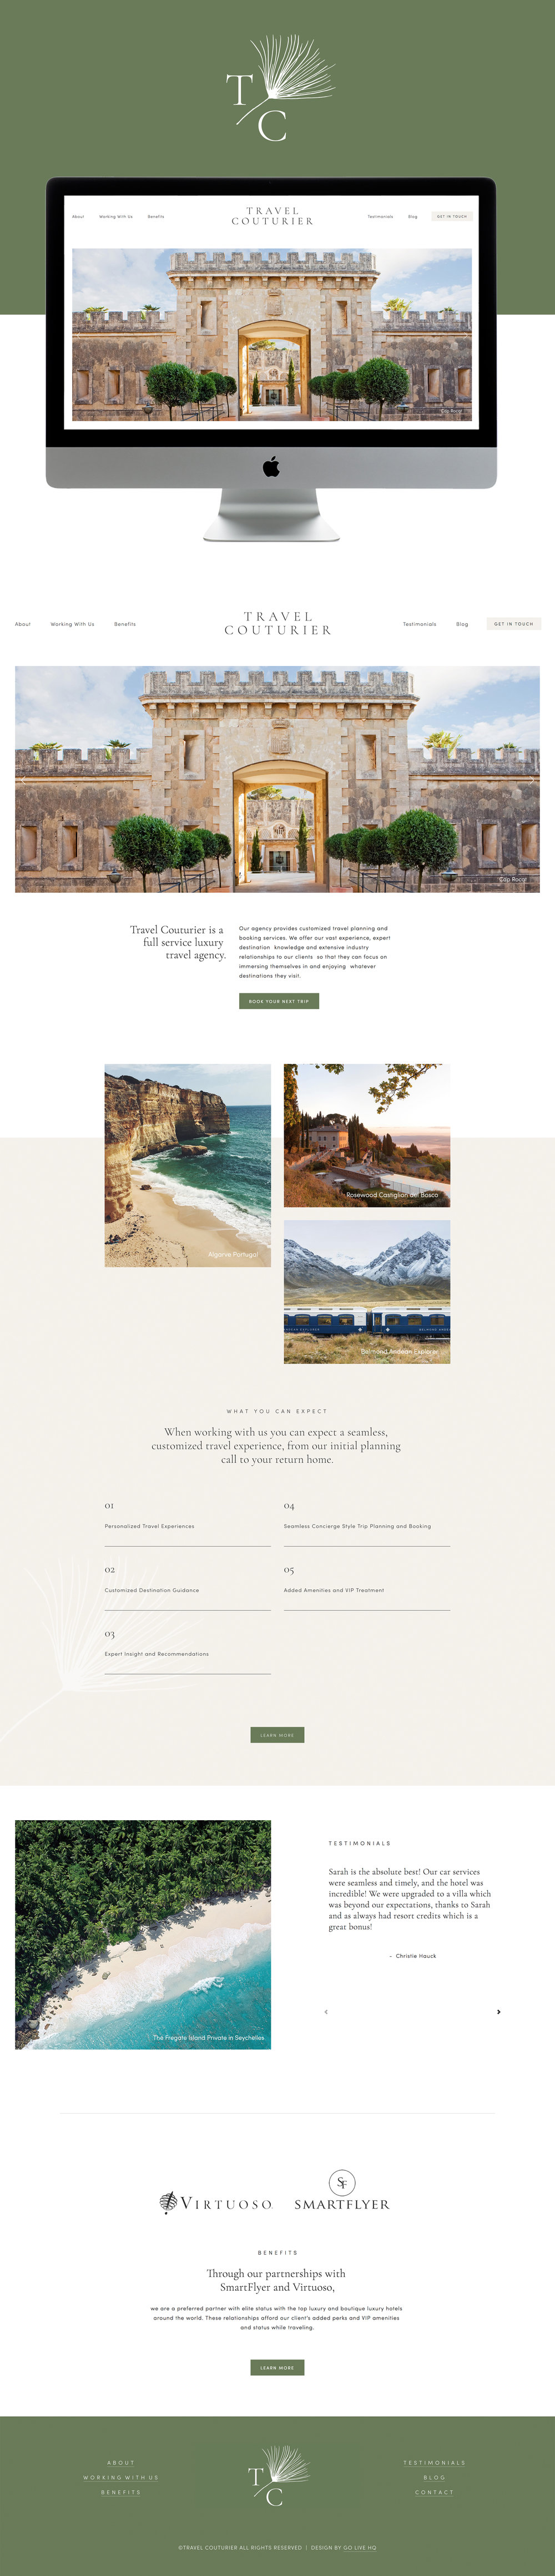 Clean, Minimal, Travel Squarespace Website Design | By GoLive